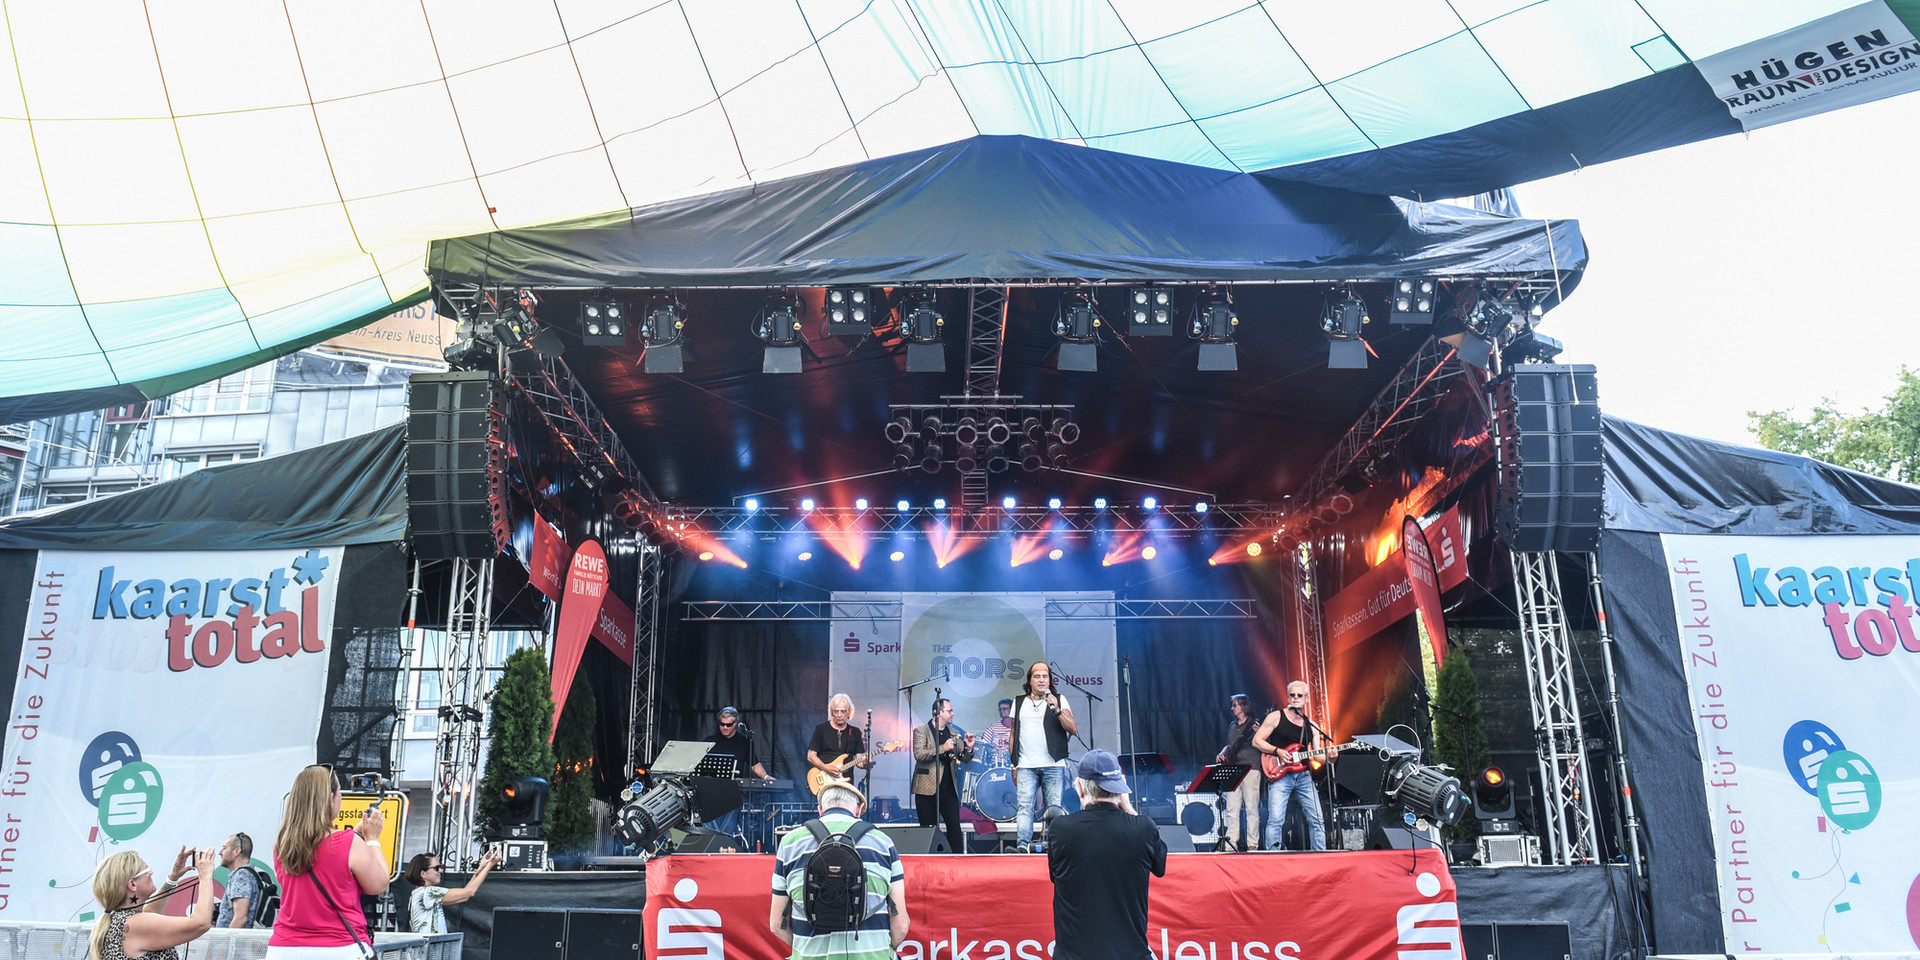 The MORS live bei Kaarst total 2019